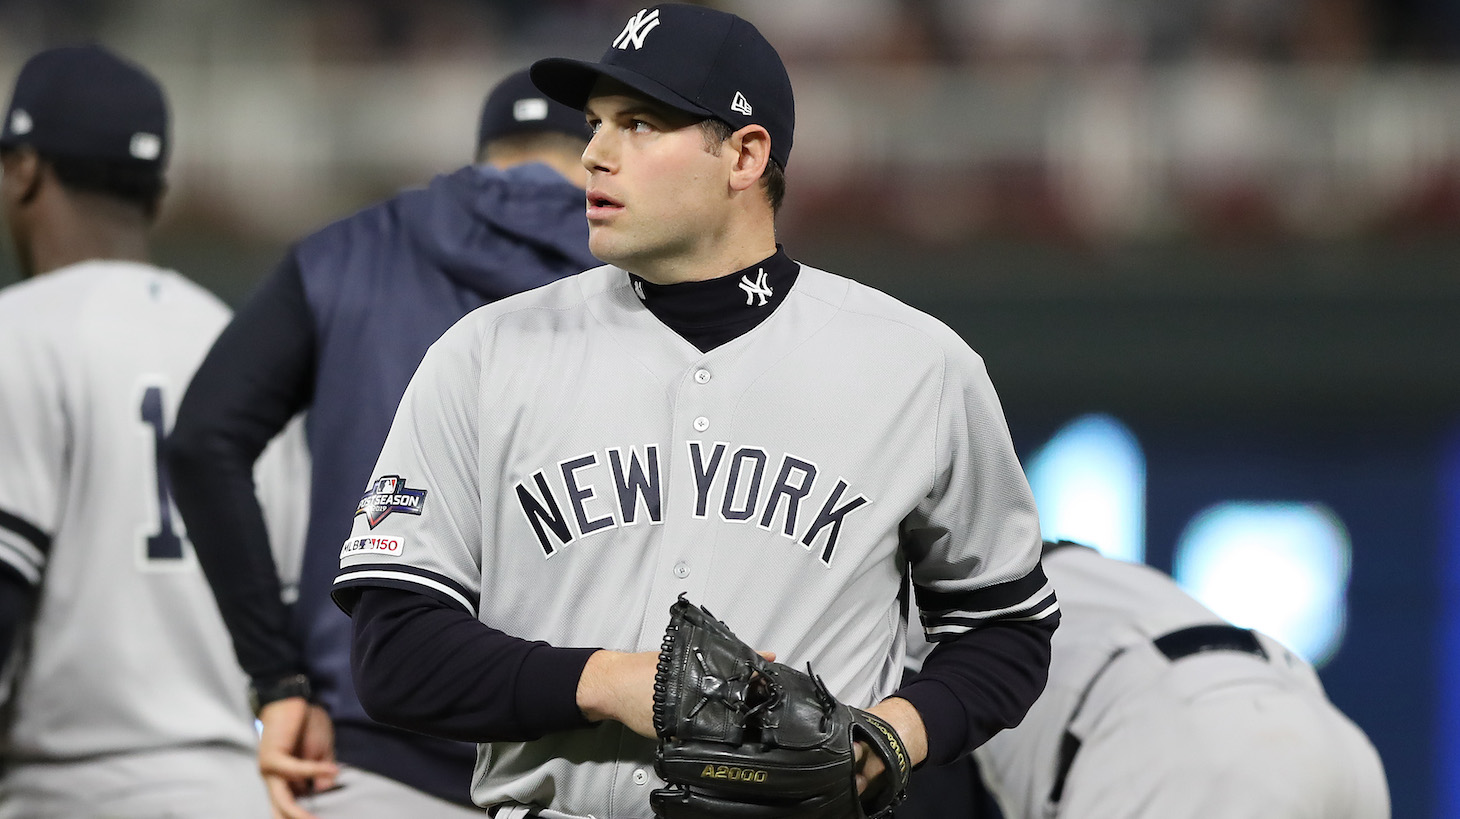 MINNEAPOLIS, MINNESOTA - OCTOBER 07: Adam Ottavino #0 of the New York Yankees is pulled after walking Nelson Cruz #23 of the Minnesota Twins in game three of the American League Division Series at Target Field on October 07, 2019 in Minneapolis, Minnesota. (Photo by Elsa/Getty Images)